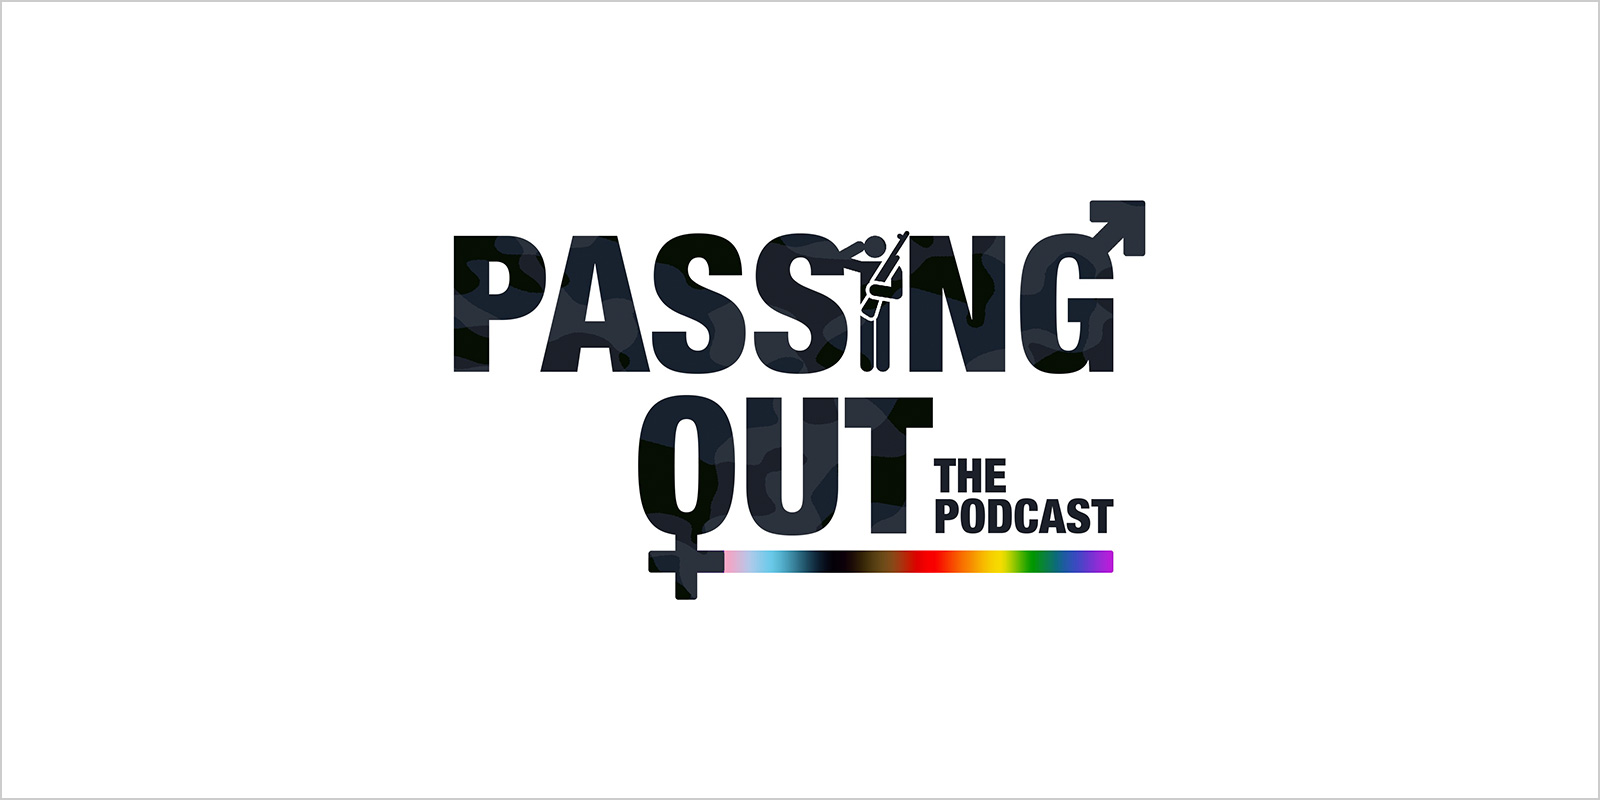 Passing Out: The Podcast